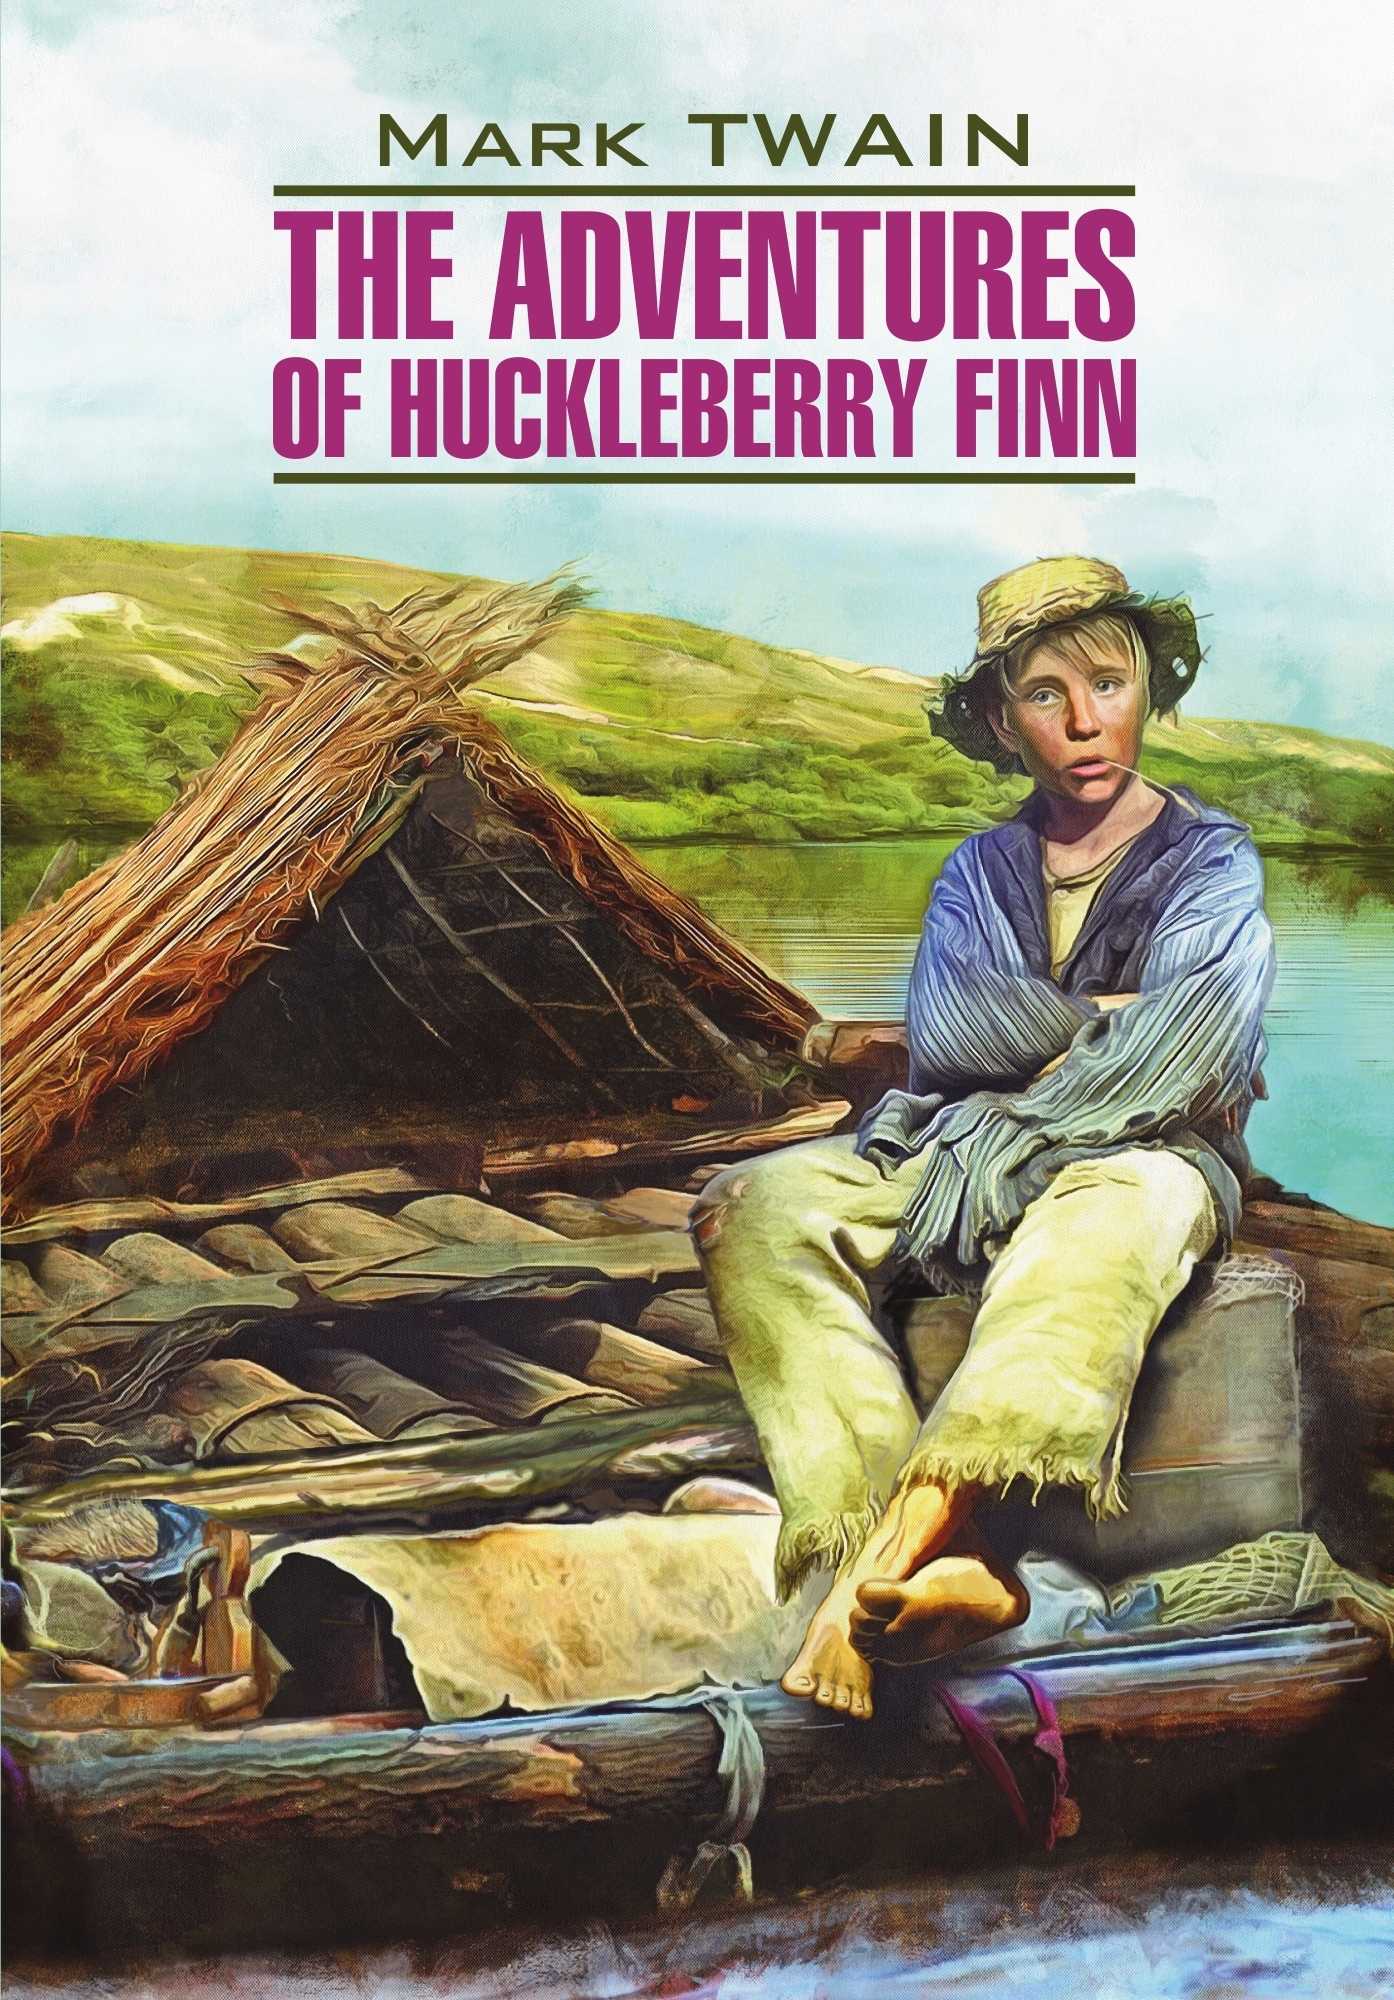 The Adventures of Huckleberry Finn / Приключения Гекльберри Финна. Книга для чтения на английском языке – Марк Твен, Е. Тигонен